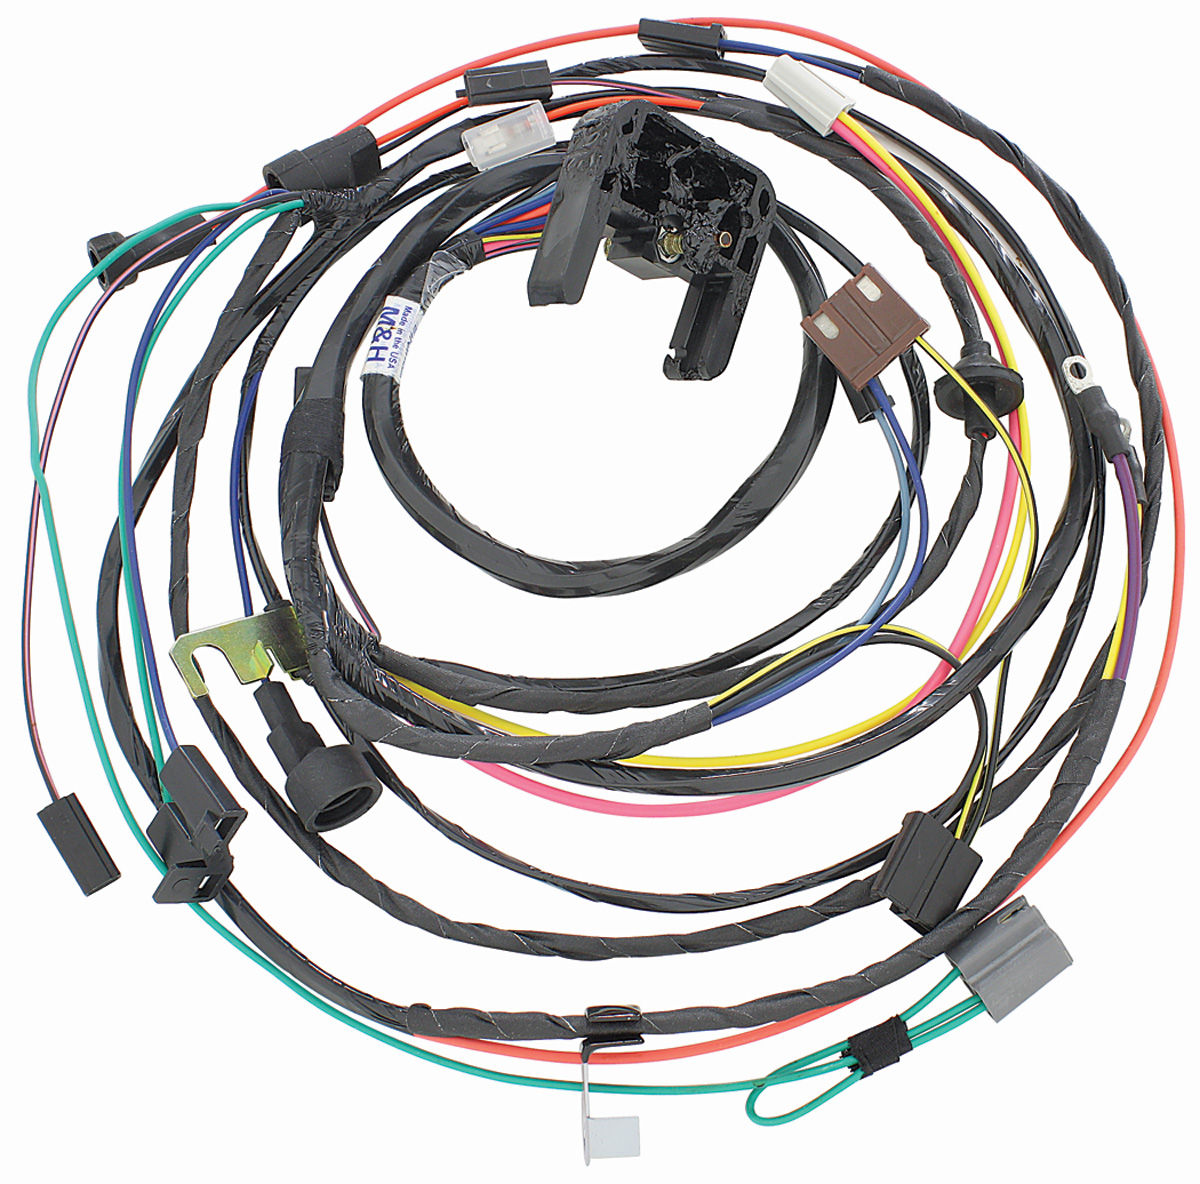 38928 lrg m&h 1970 chevelle engine harness 396 454 hei w auto trans @ opgi com 1970 chevelle engine wiring harness at n-0.co